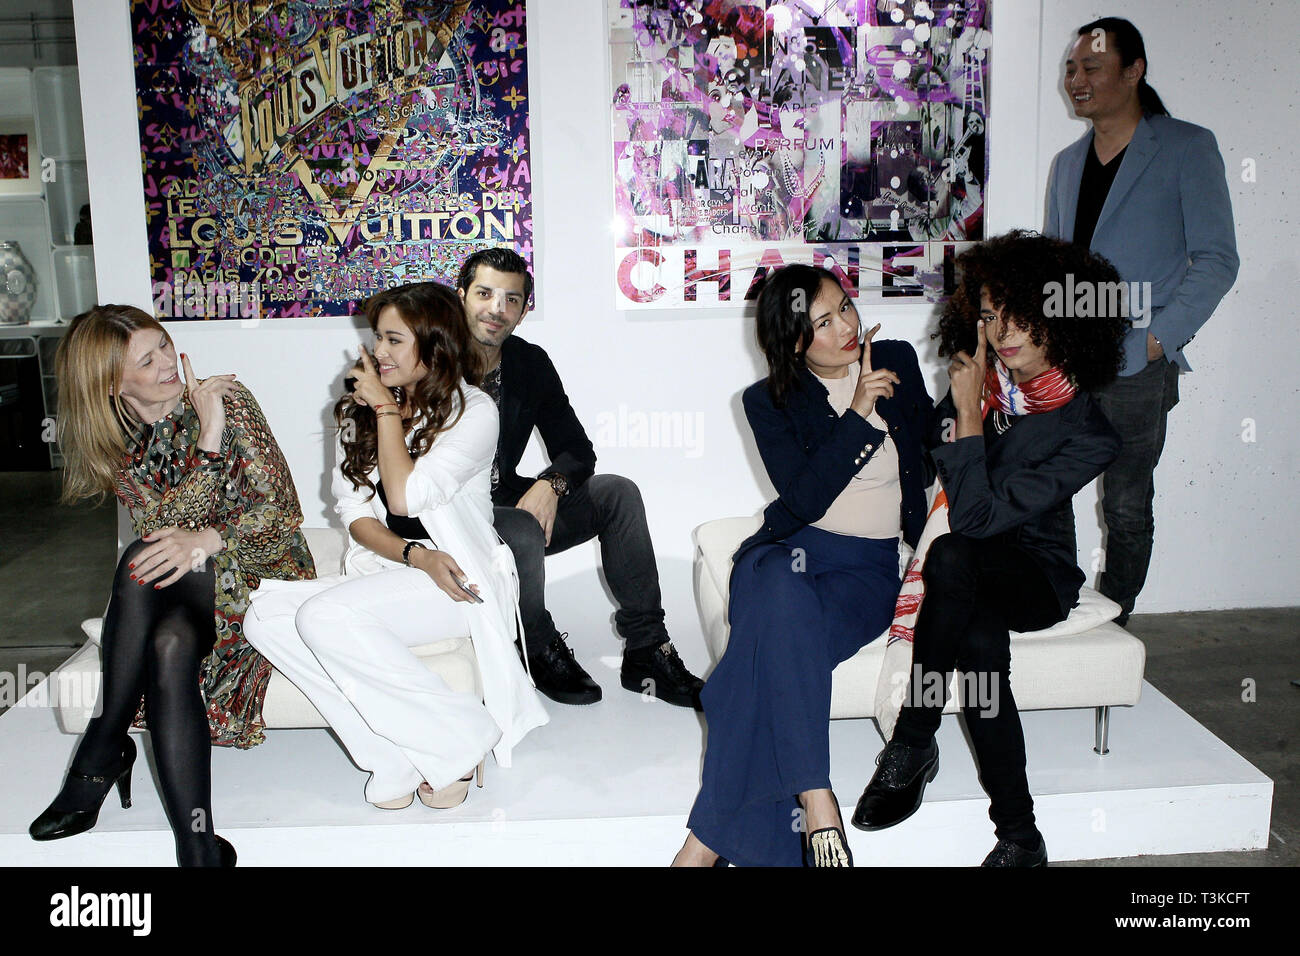 New York, USA. 21 May, 2015.  Co-Creater of Space 16, Daniela Zahradnikova, Art Dearler, Sasha Rales, Artist, Tigran Tsitoghdzyan, Kamilla Sun, Designer/Model, Michael McElroy, and, Eddie Chau at The Opening Night Of 'Paul Gerben: Mind Game' Private Art Event at Space 16 on May 21, 2015 in New York, NY. Credit: Steve Mack/S.D. Mack Pictures/Alamy - Stock Image